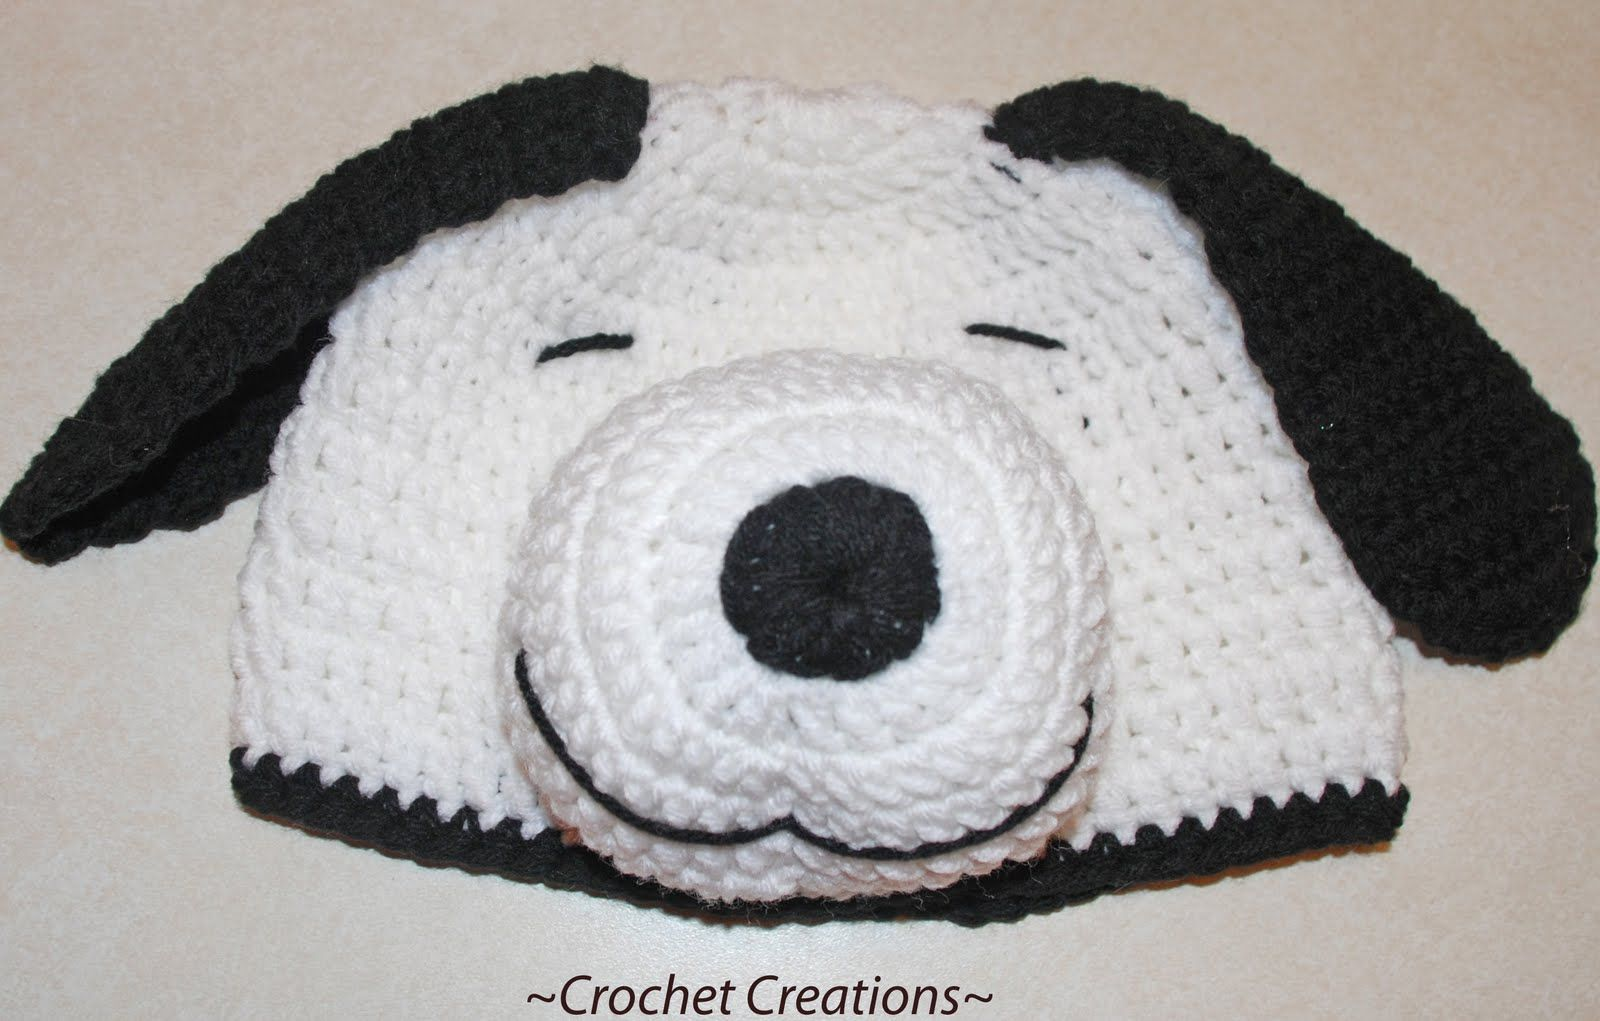 Crochet Creative Creations- Free Patterns and Instructions: Crochet ...